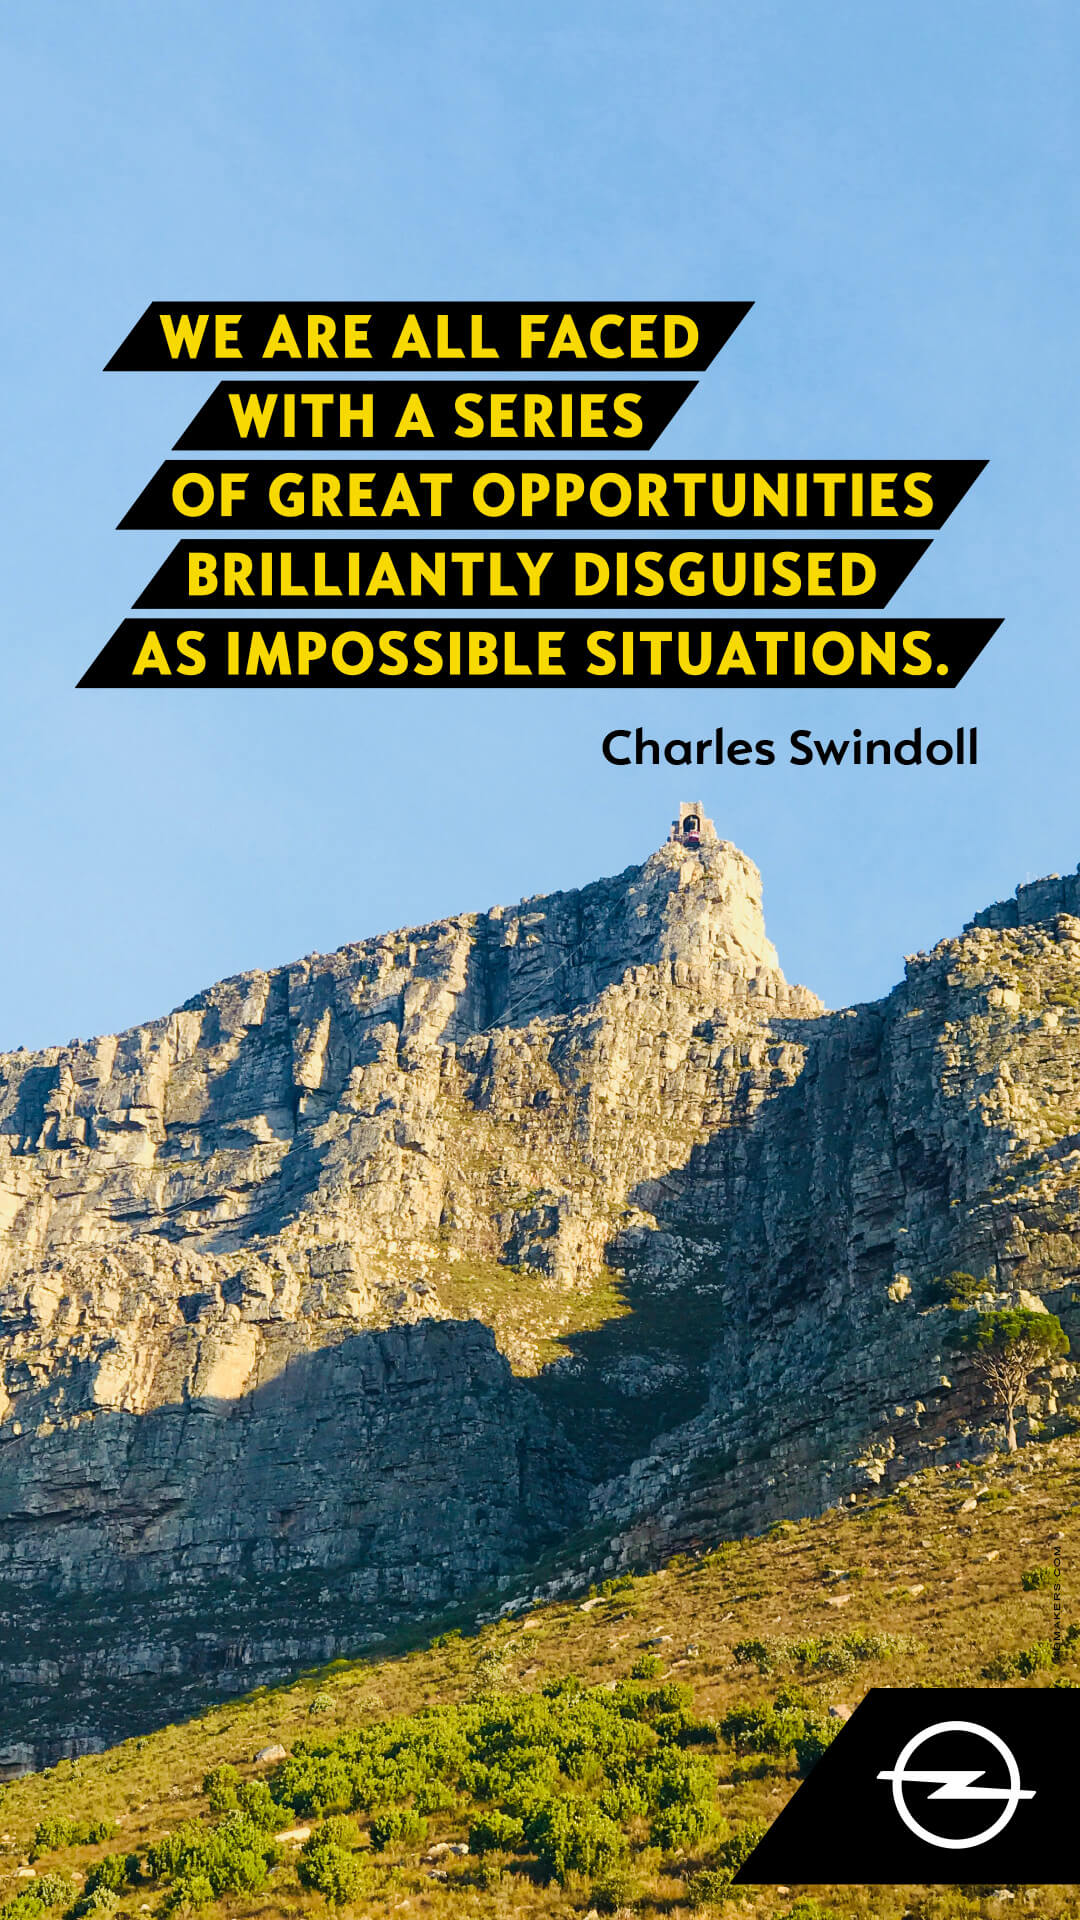 We are all faced with a series of great opportunities brilliantly disguised as impossible situations.